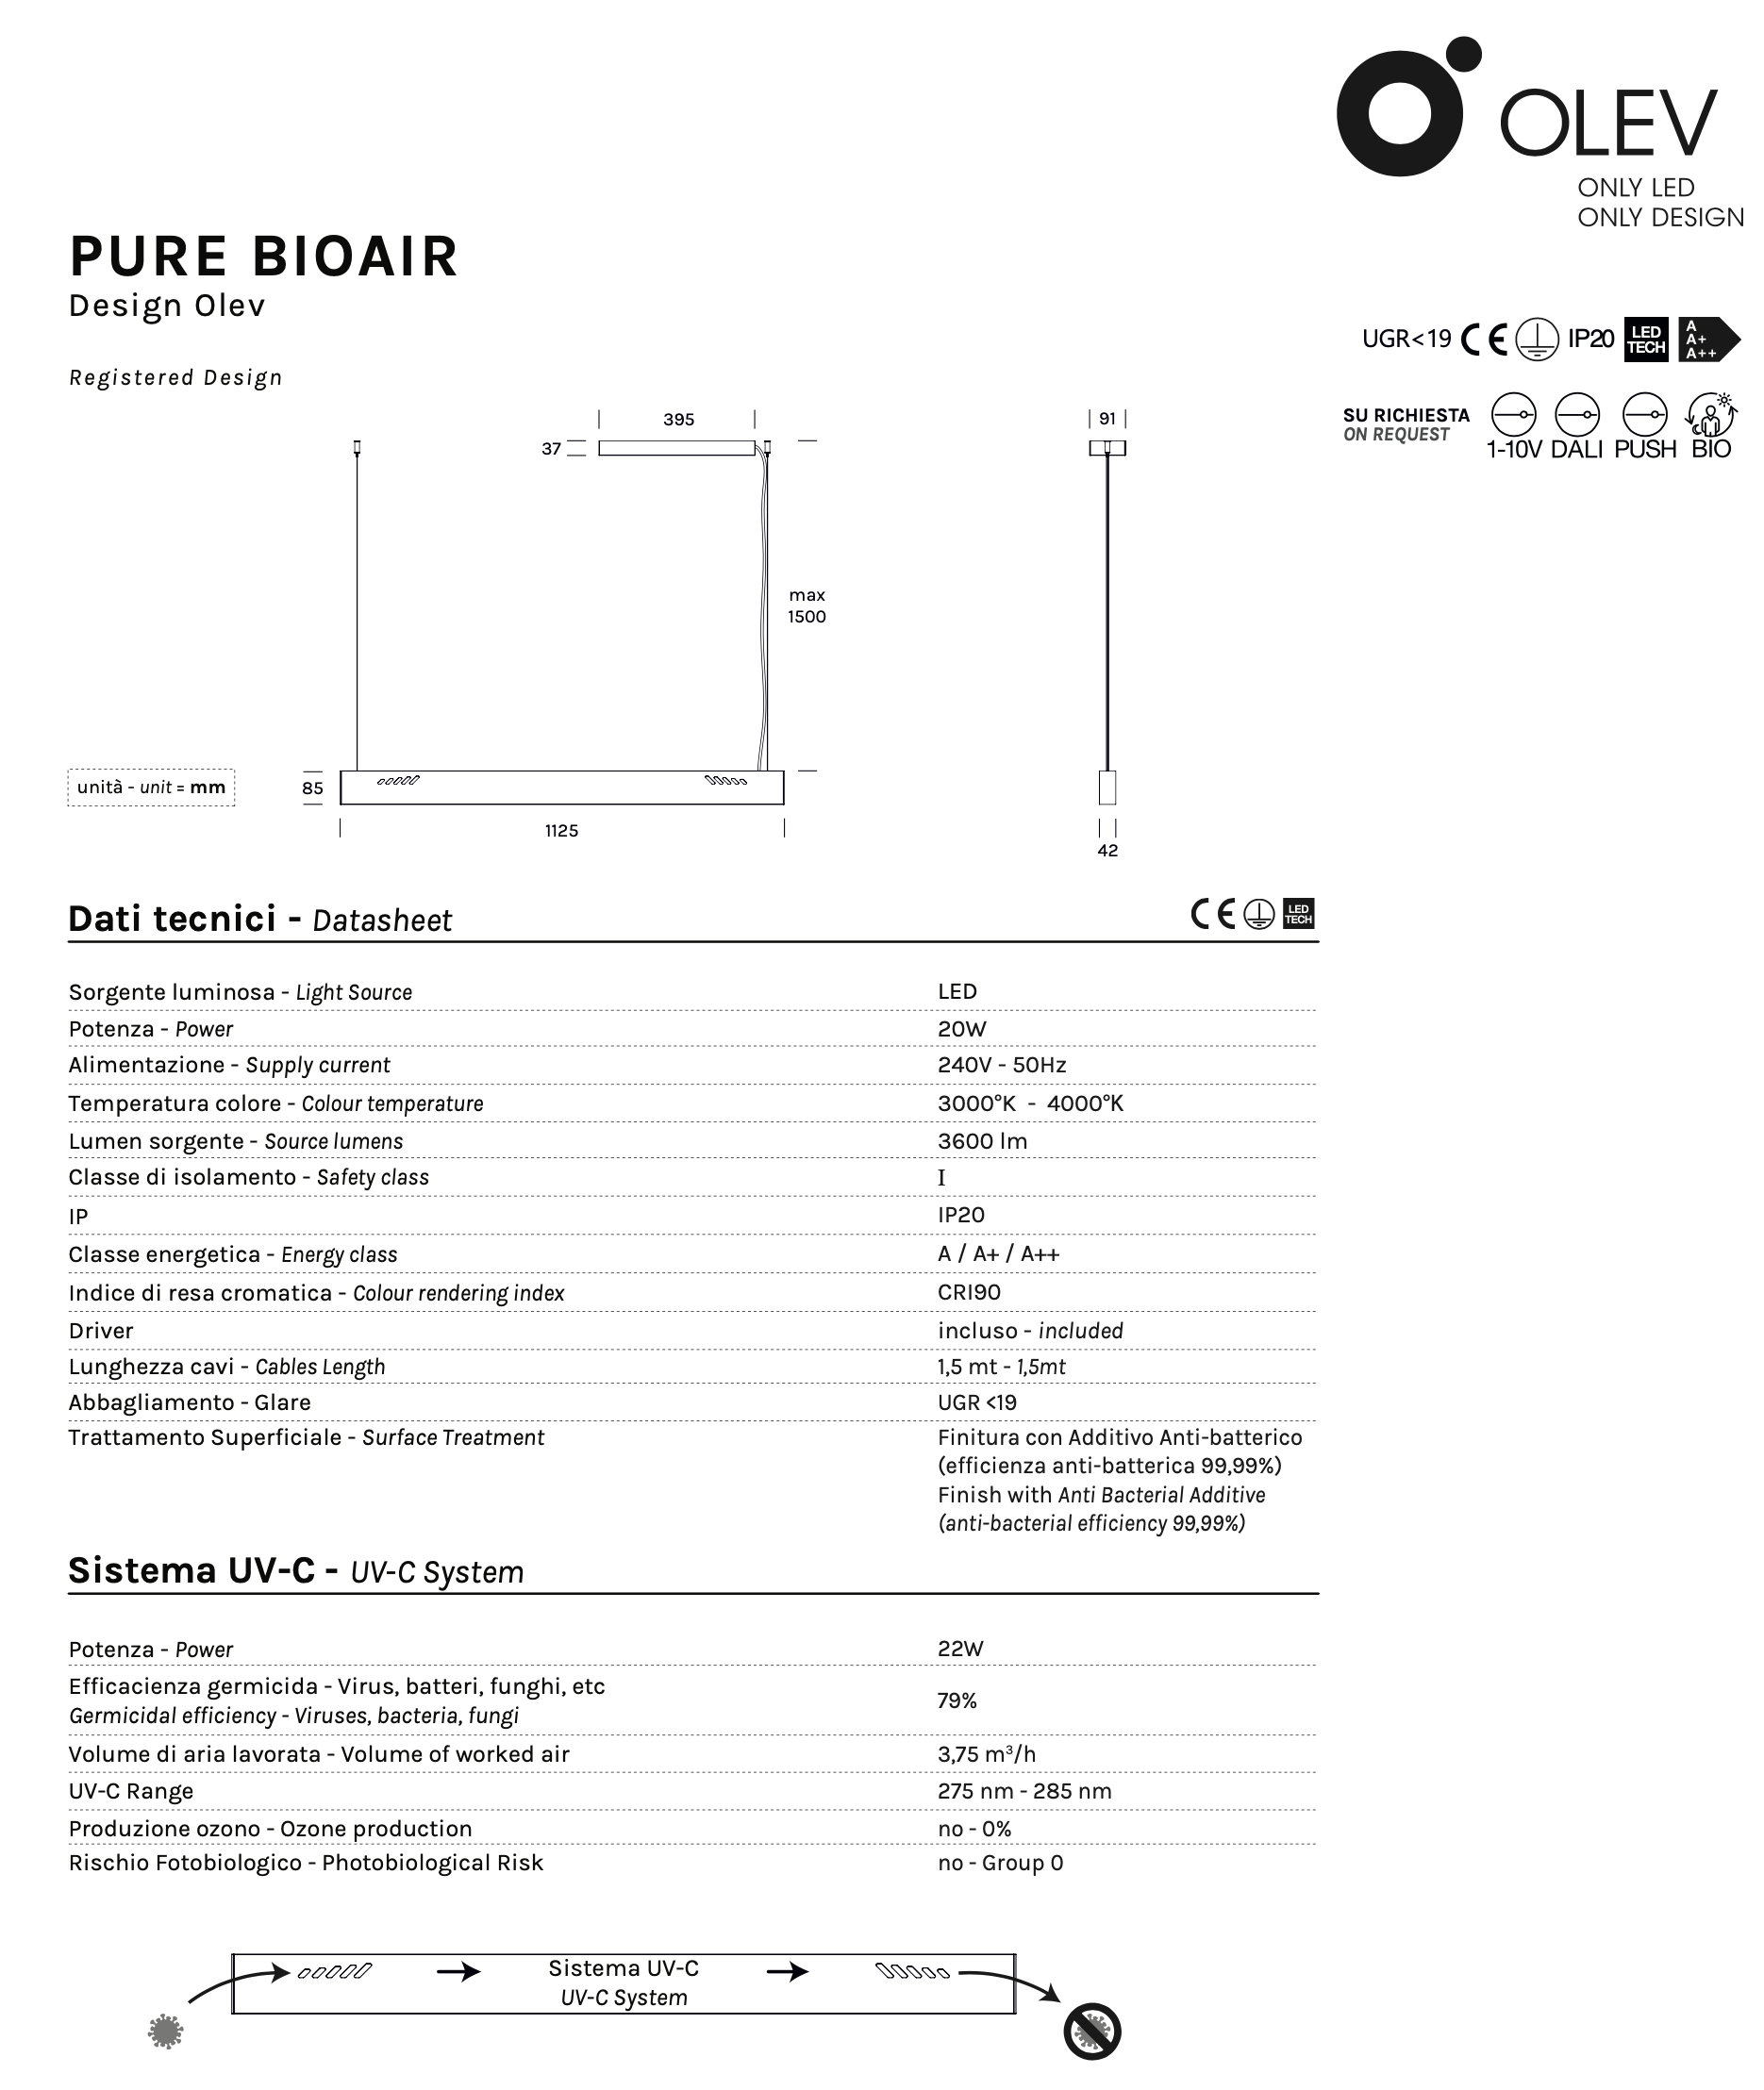 Olev Pure Bioair Tech